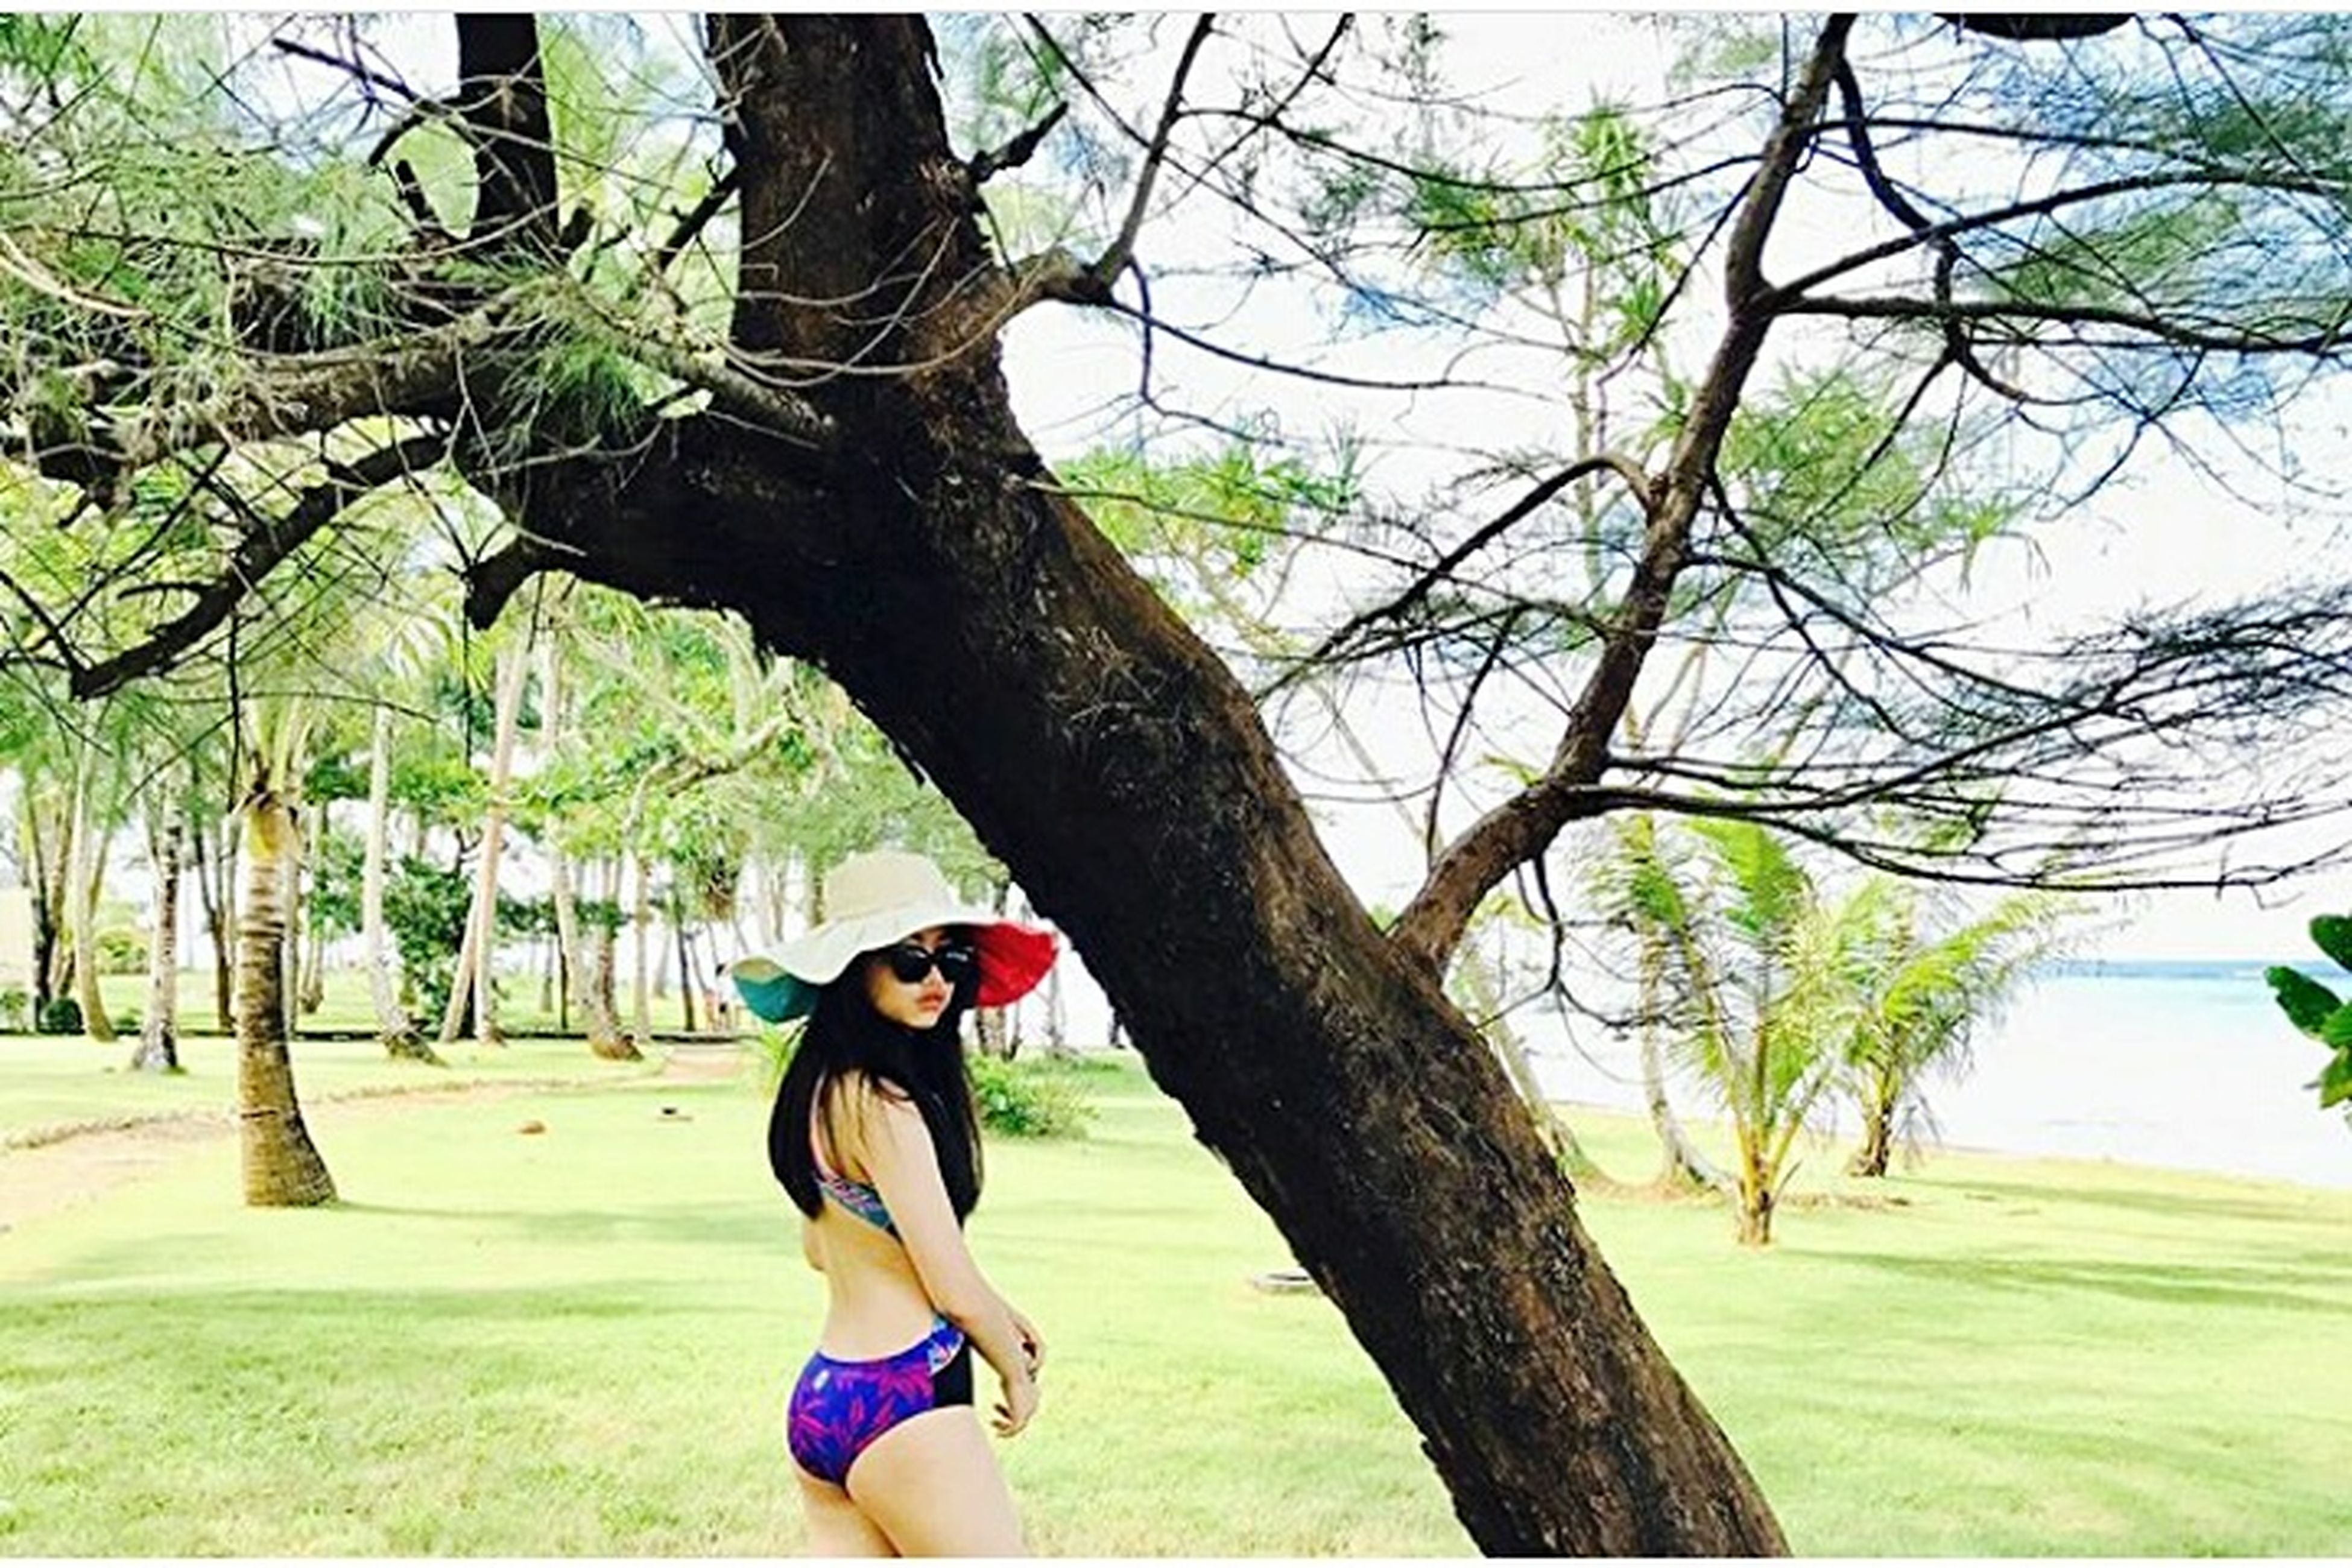 tree, tree trunk, one person, day, lifestyles, real people, nature, outdoors, leisure activity, branch, young women, young adult, grass, beauty in nature, sky, people